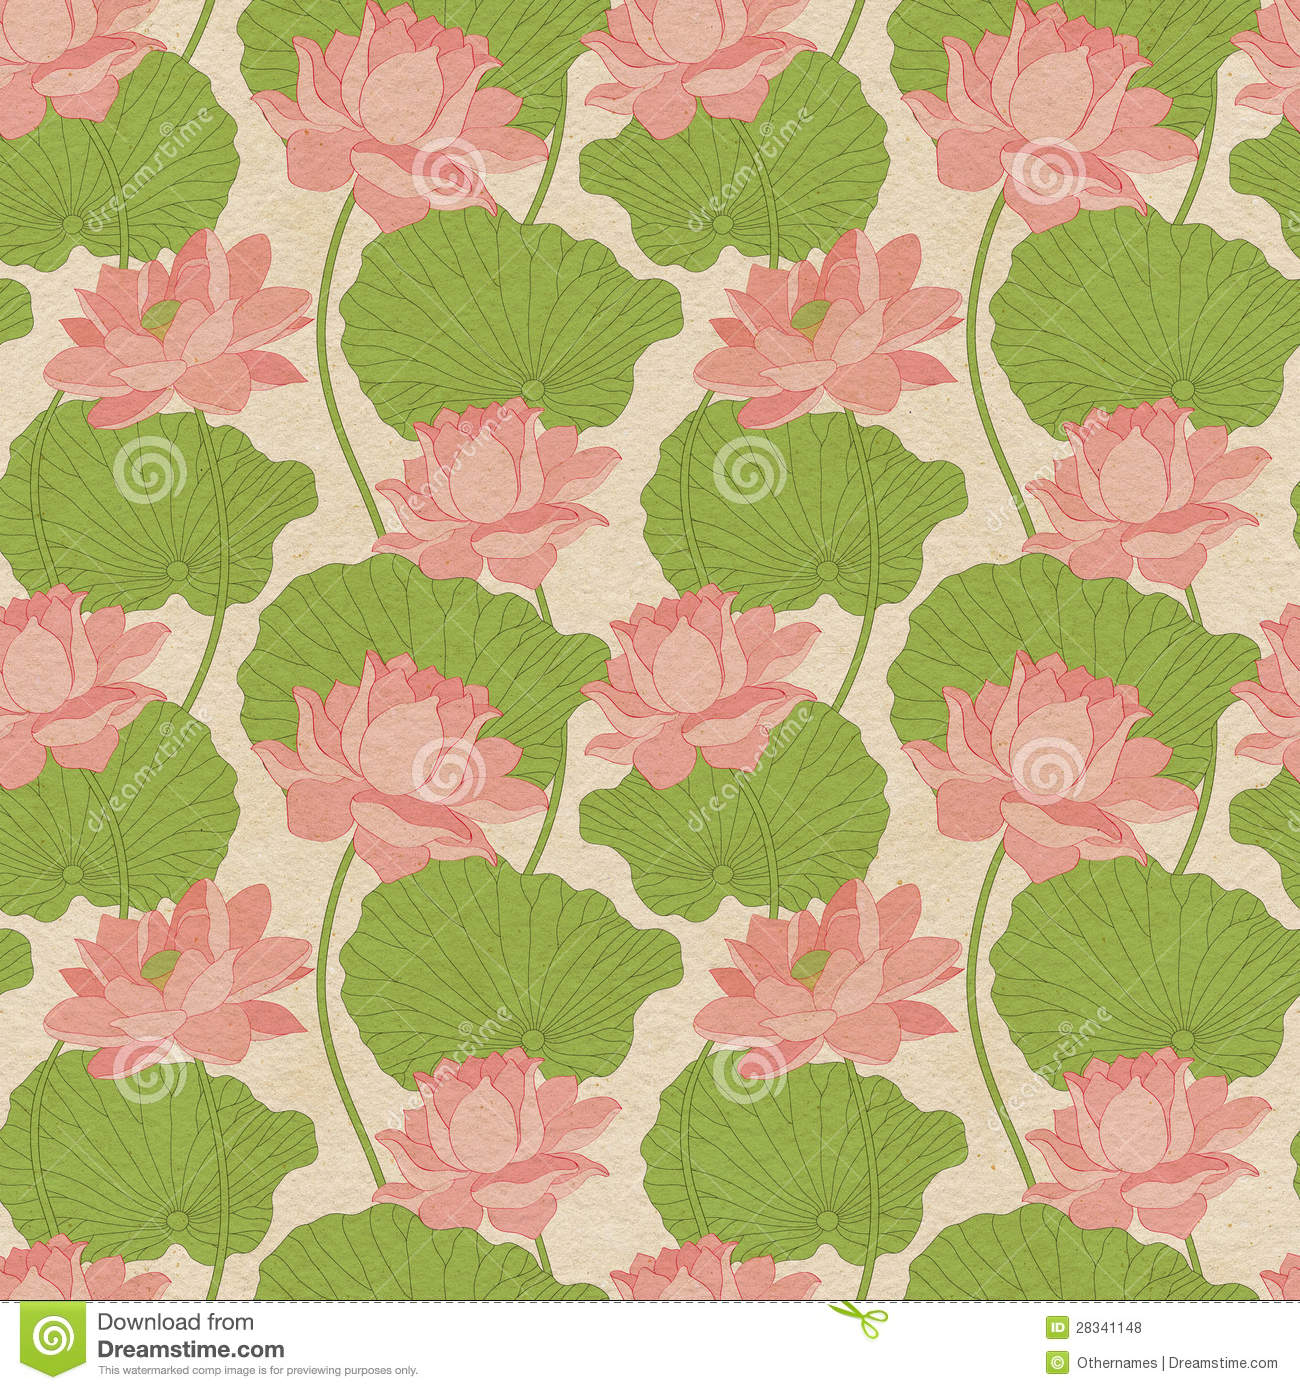 Lotus Flower Design Wall Paper : Seamless wallpaper pattern with lotus royalty free stock